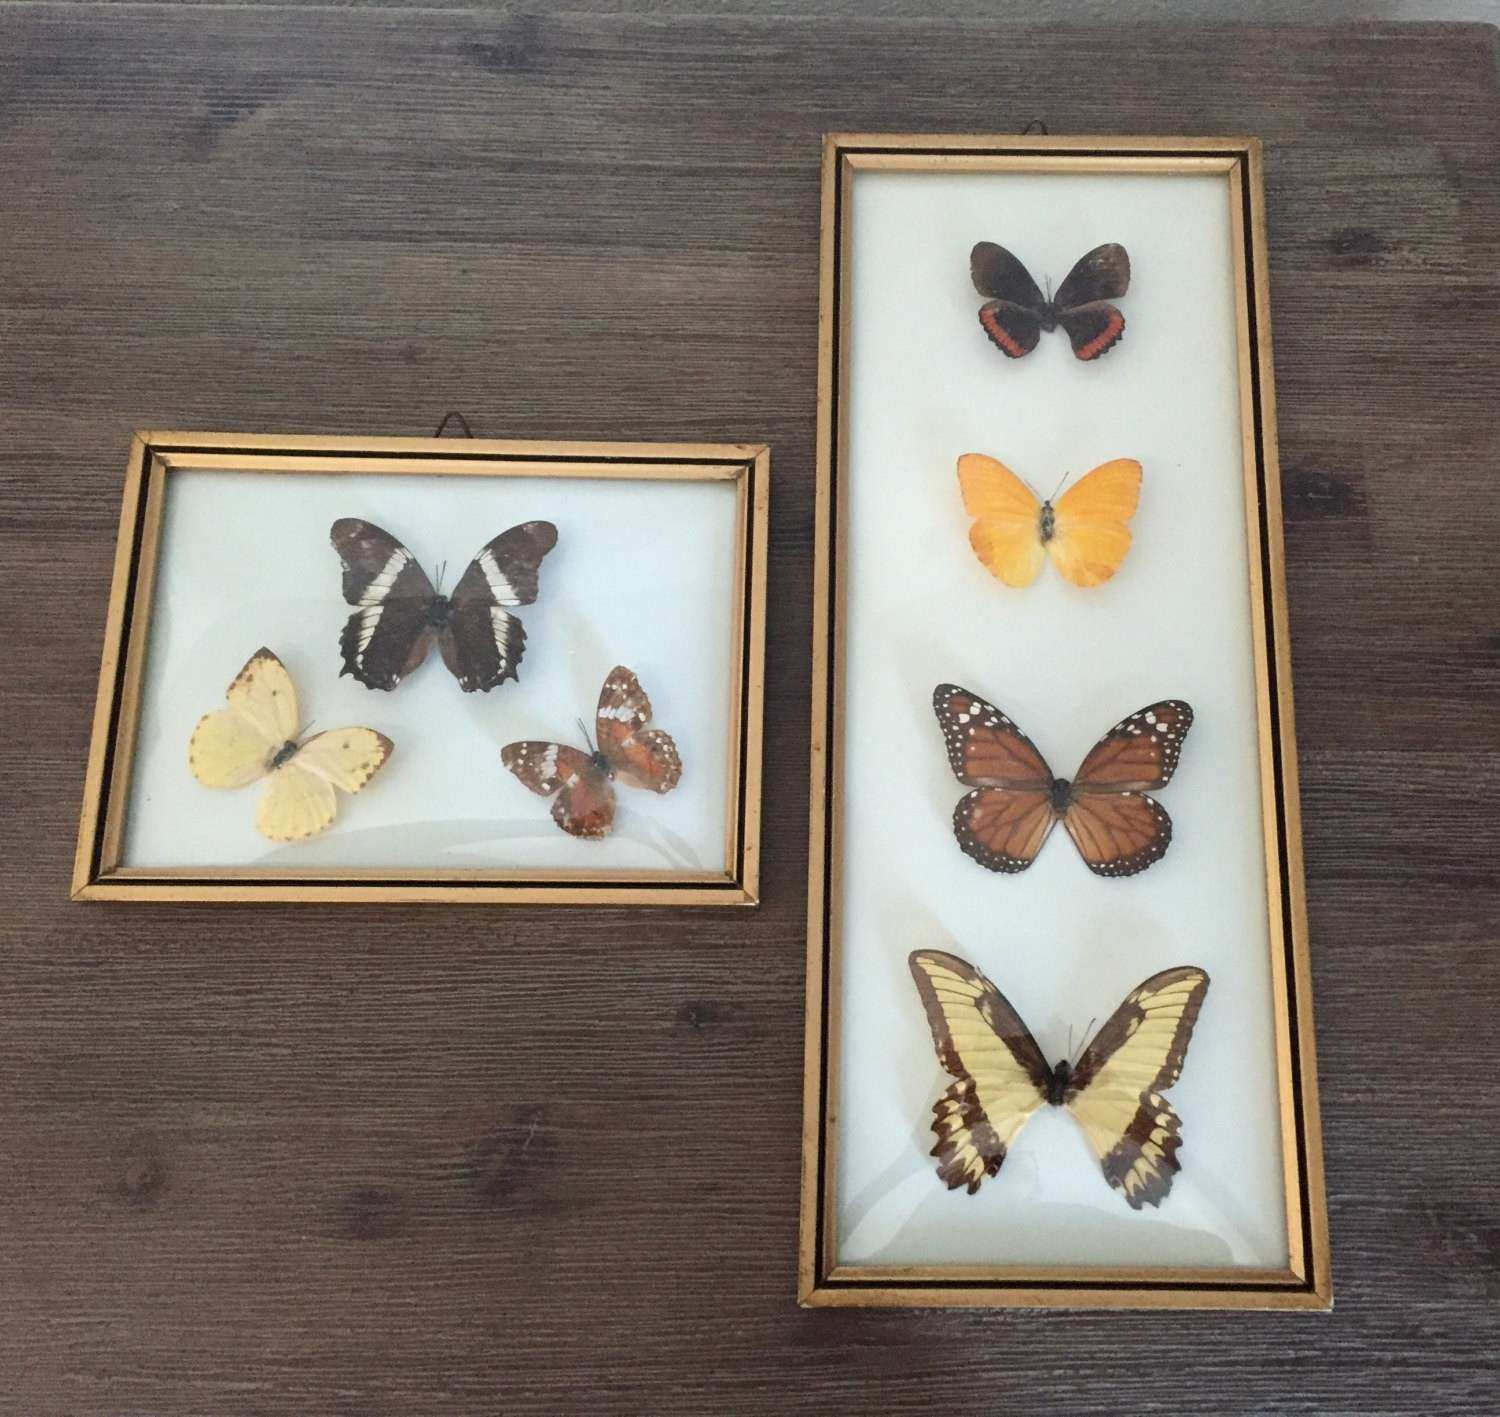 Butterfly Wall Art Fresh butterfly Wall Art Framed Curved Glass Mounted butterflies